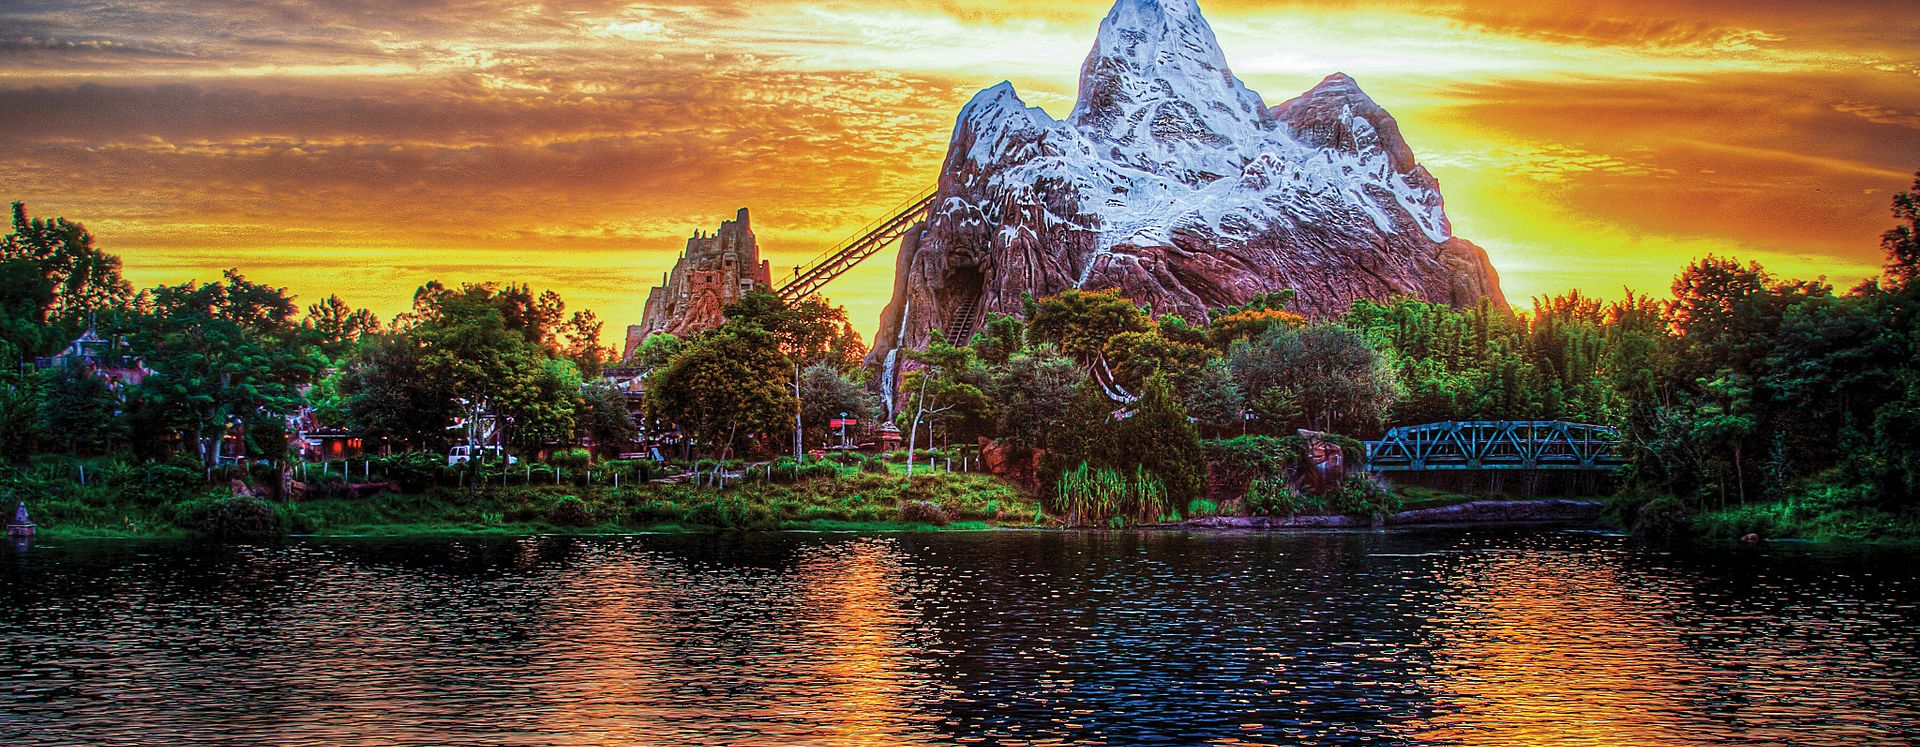 Animal Kingdom's Expedition Everest during sunset